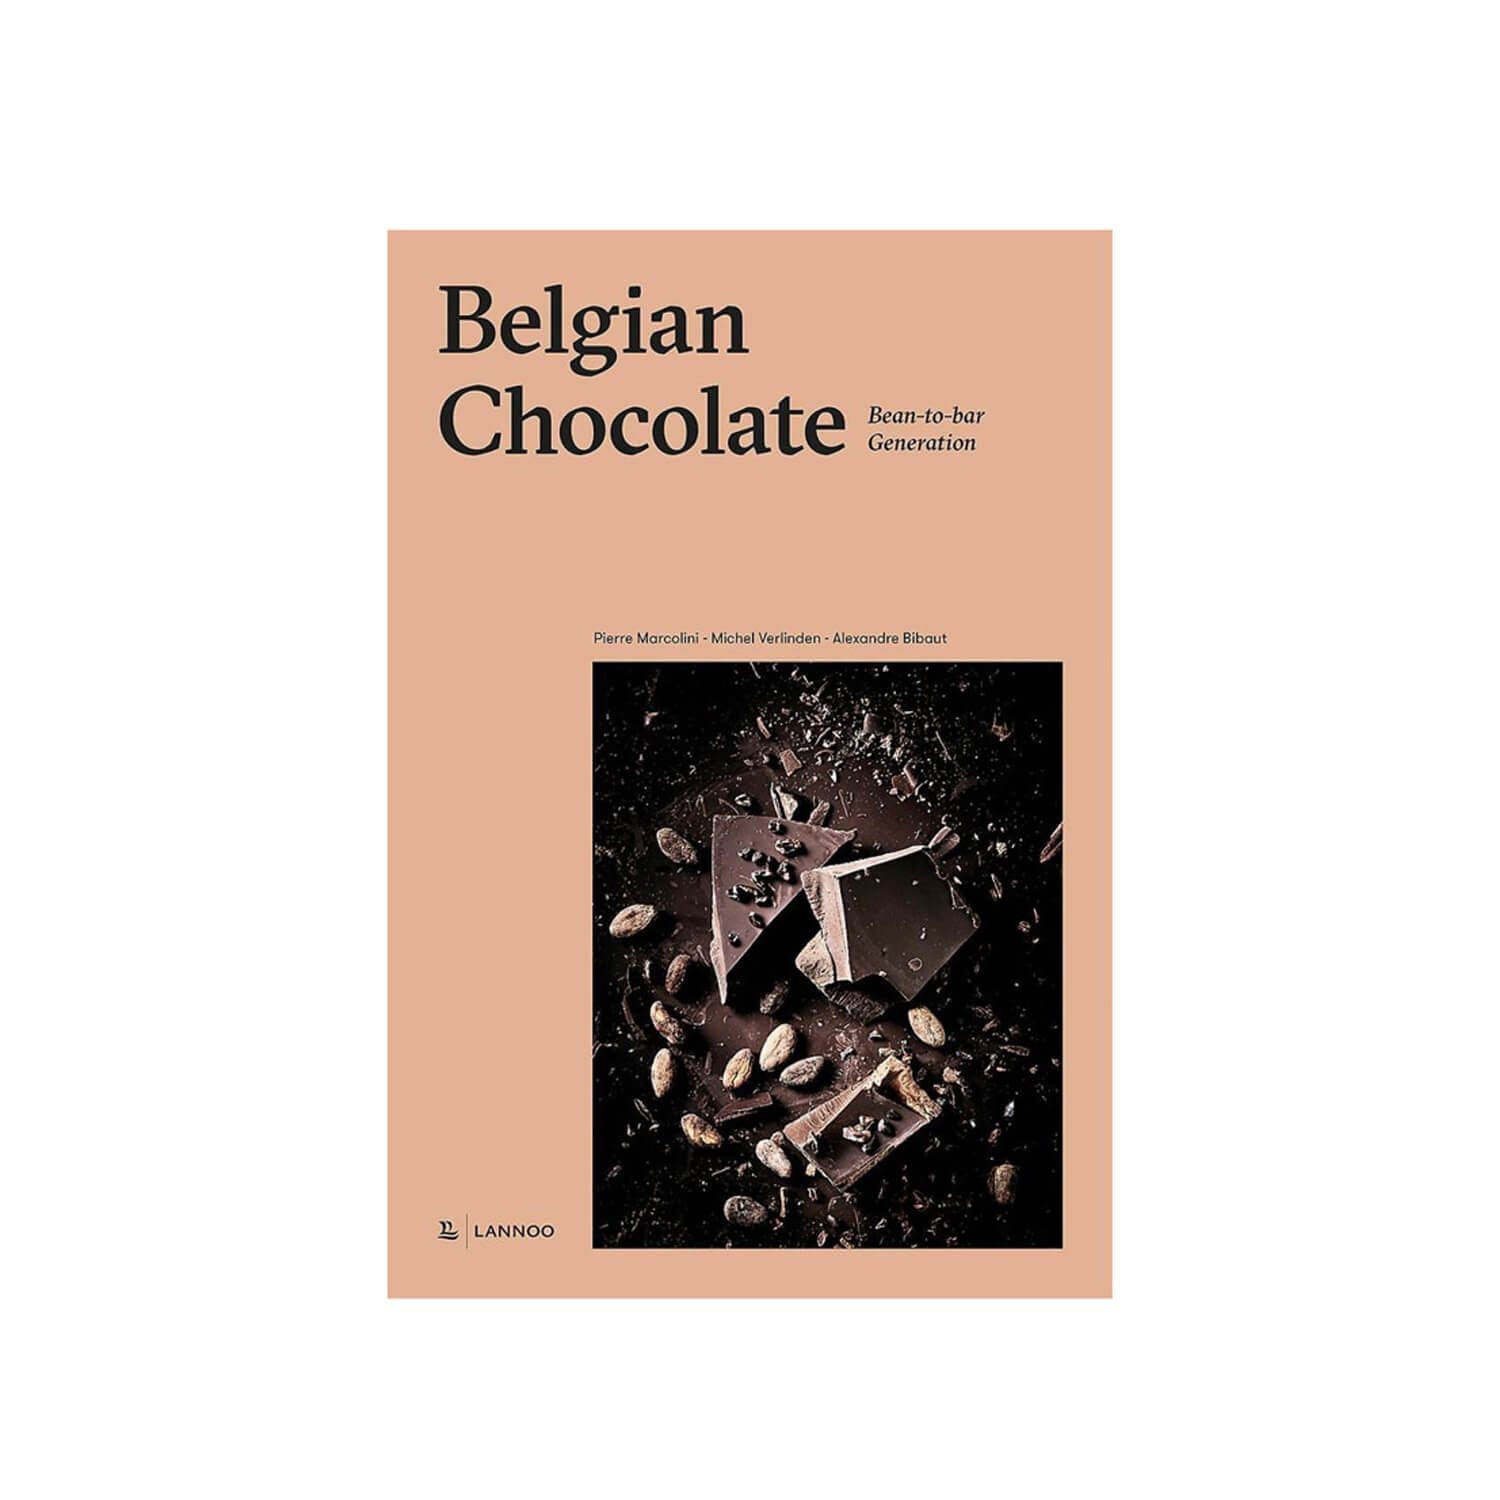 Boek - Belgian chocolate